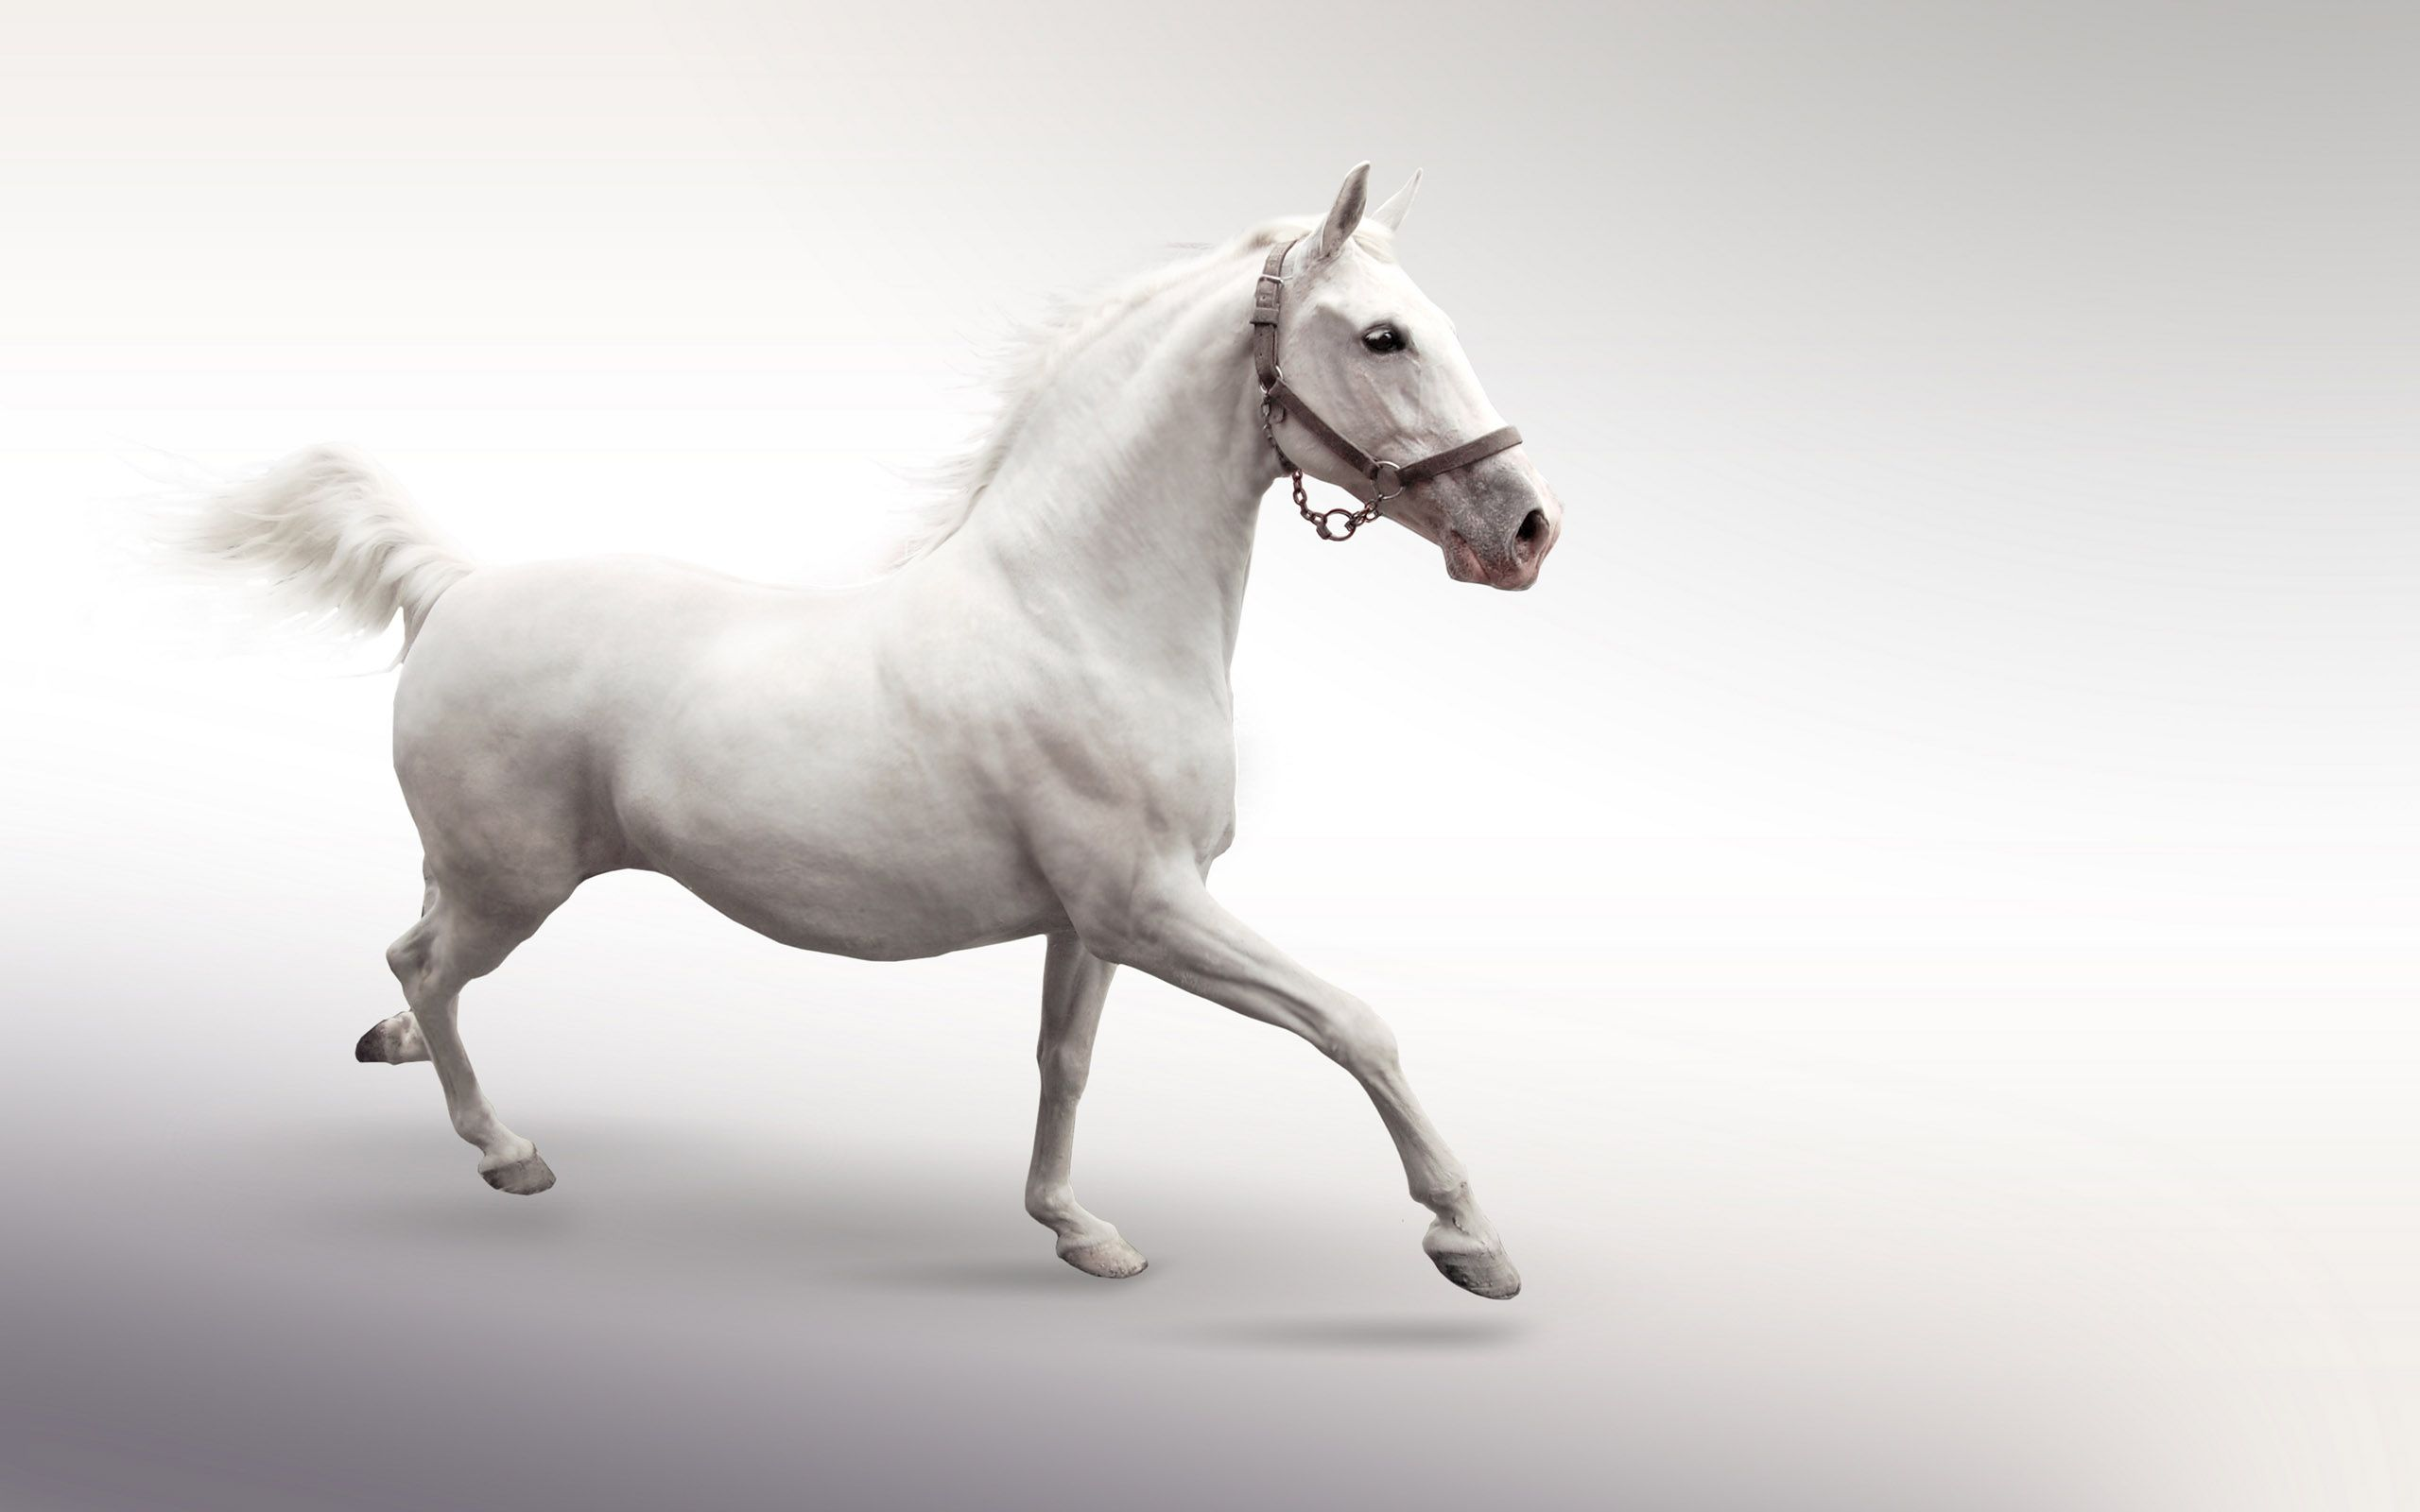 White Horse On A White Background Animal Wallpapers Hd Wallpaper Download For Ipad And Iphone Widescreen 2160p Uhd 4k Hd Horse Wallpaper White Horses Horses